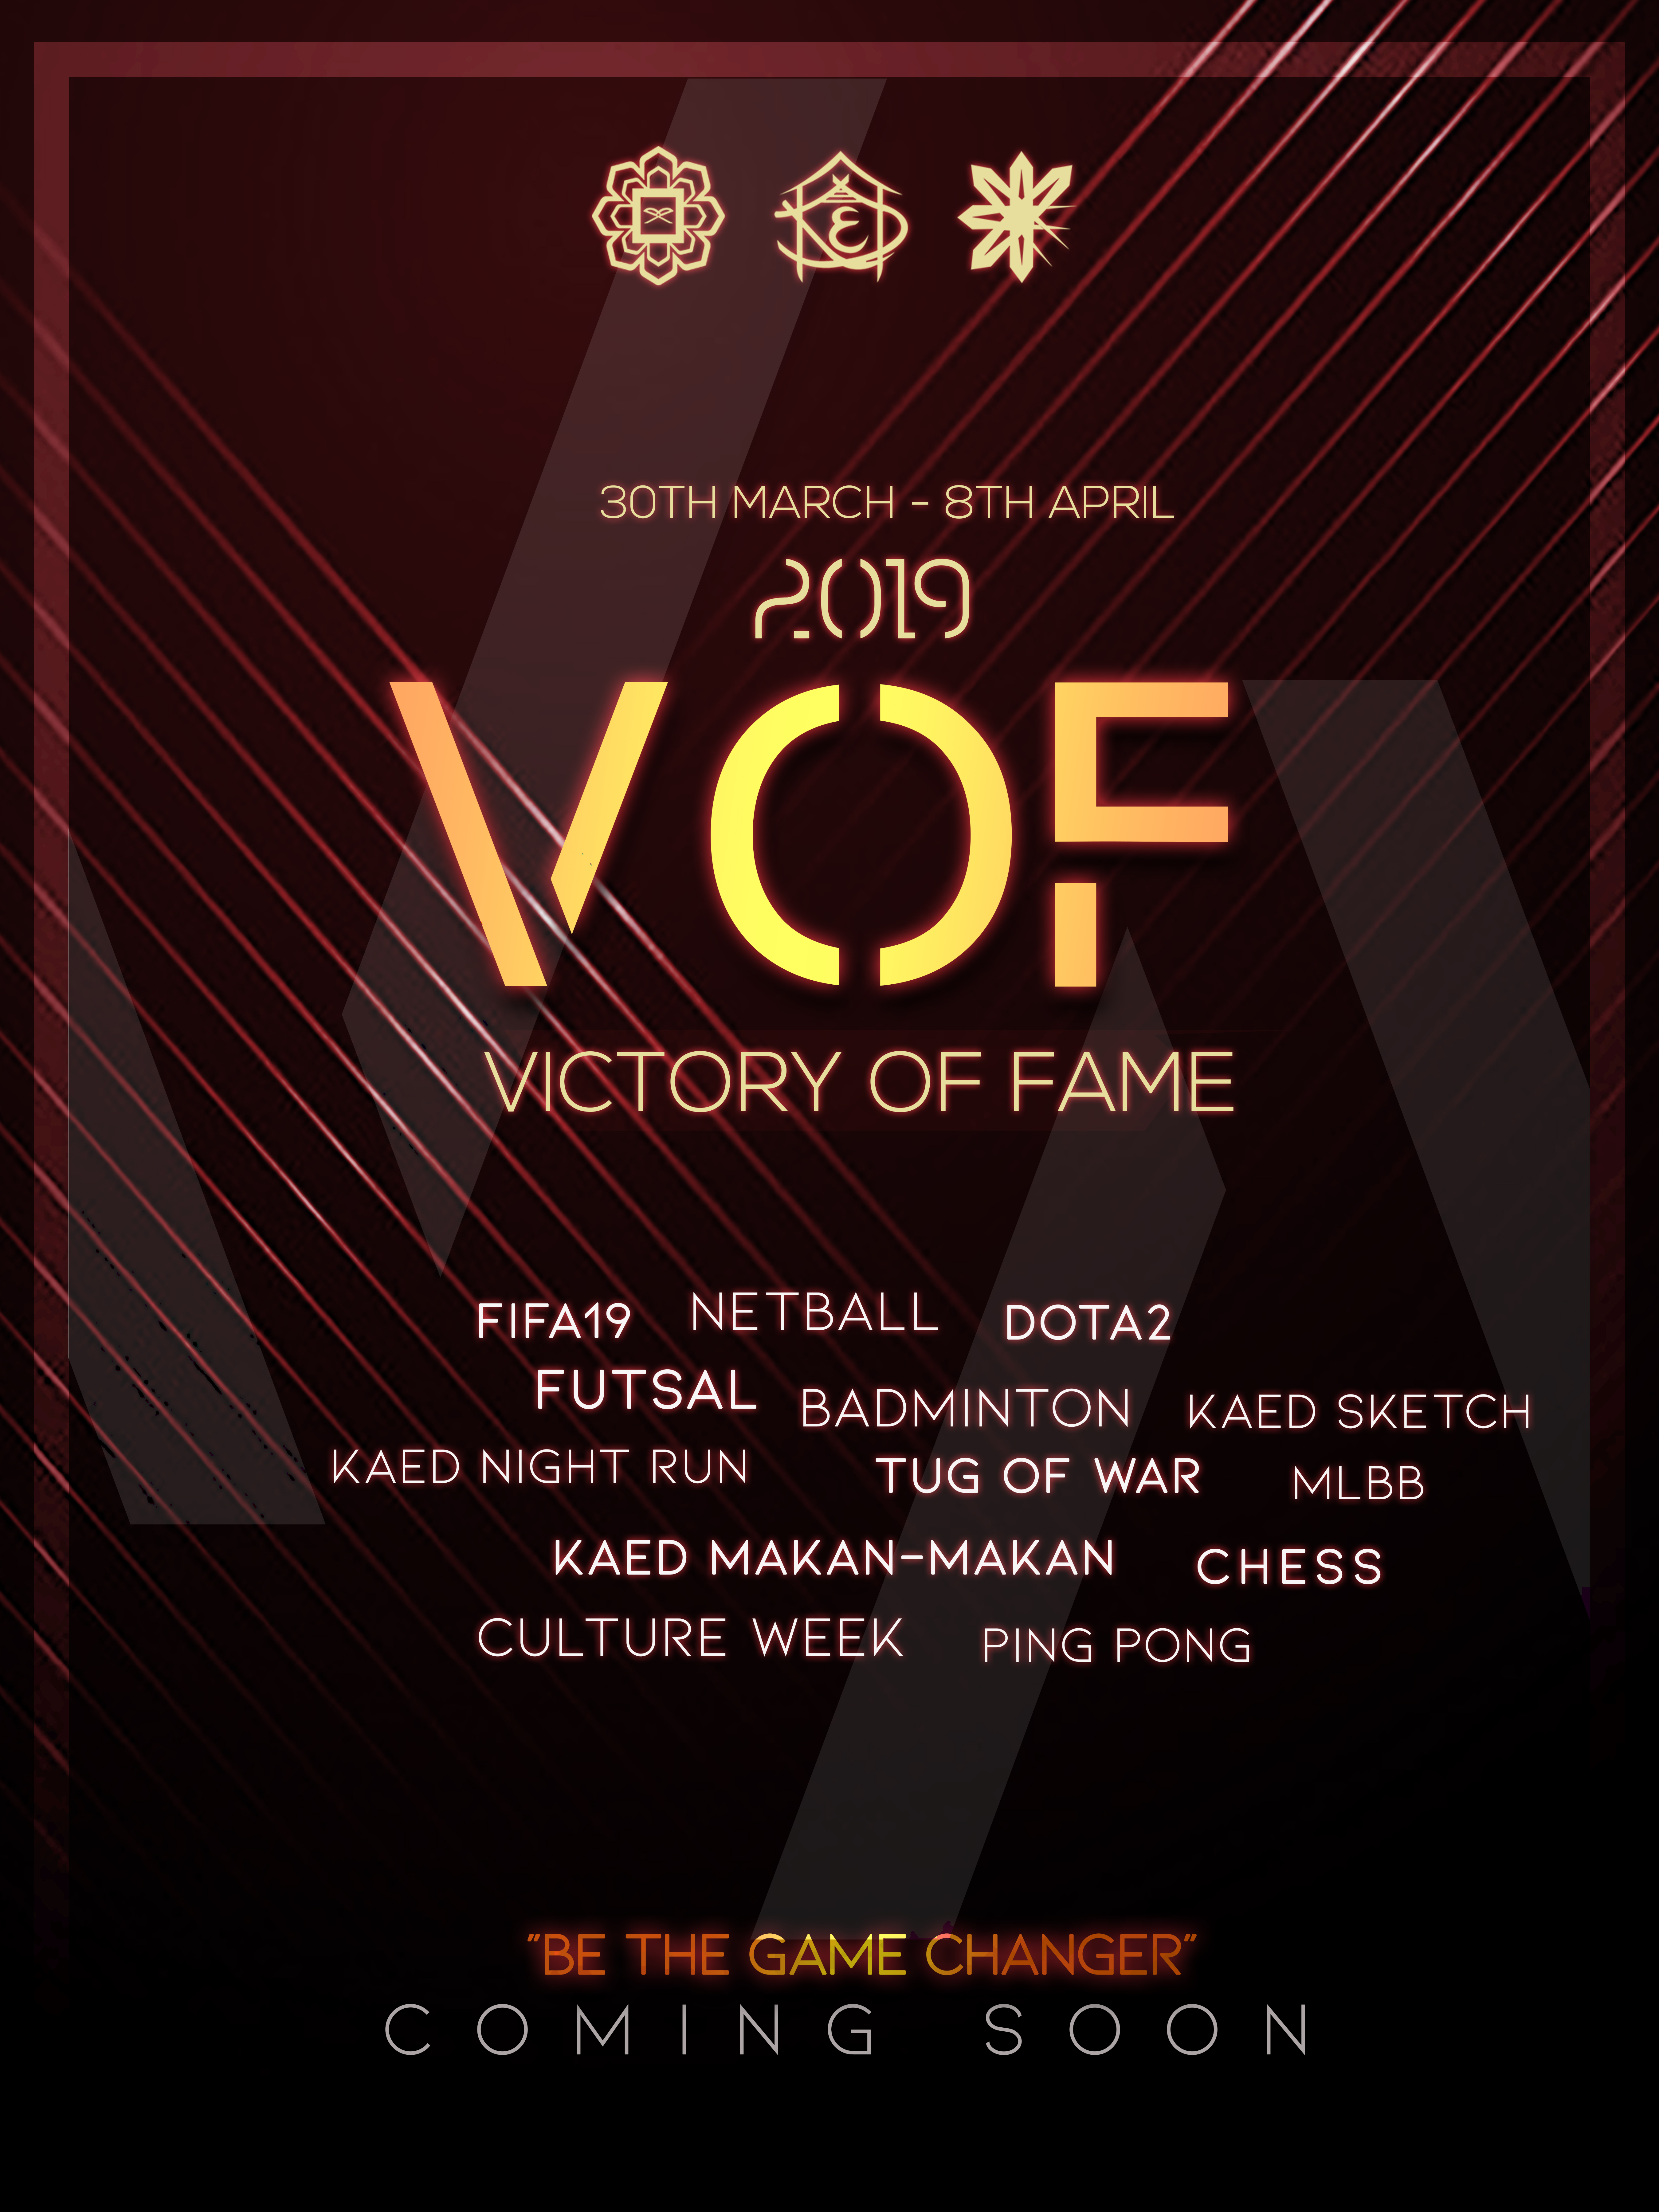 Victory of Fame 2019!